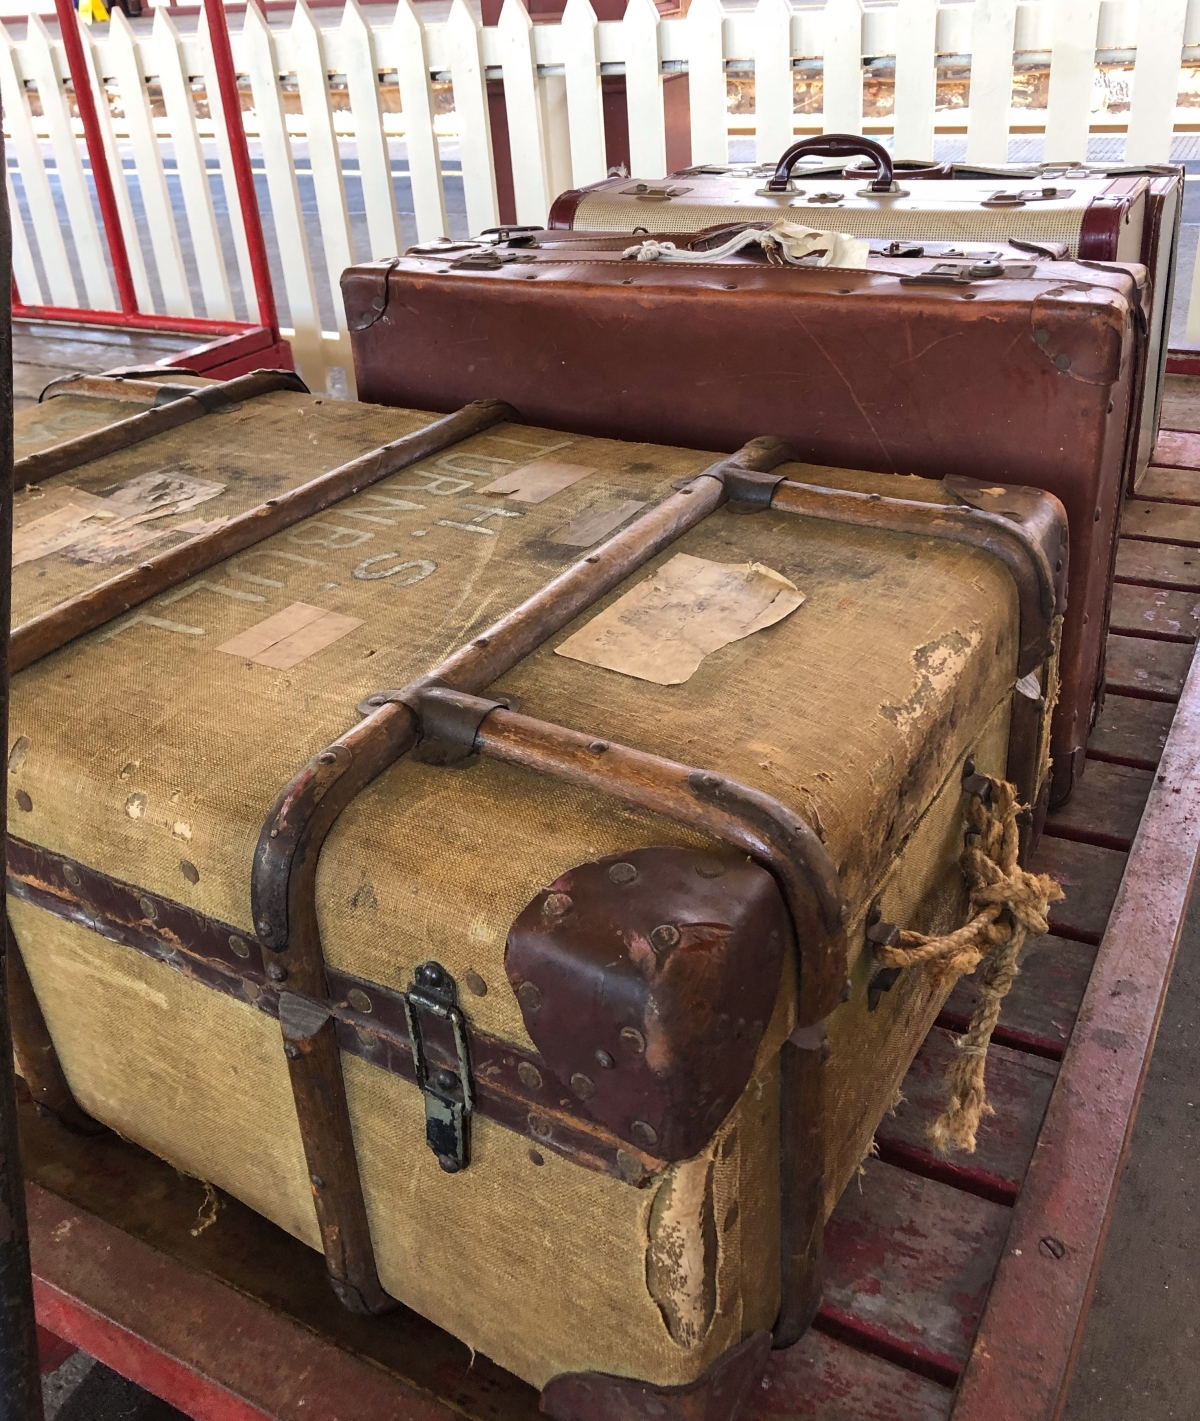 Old suitcases at the station